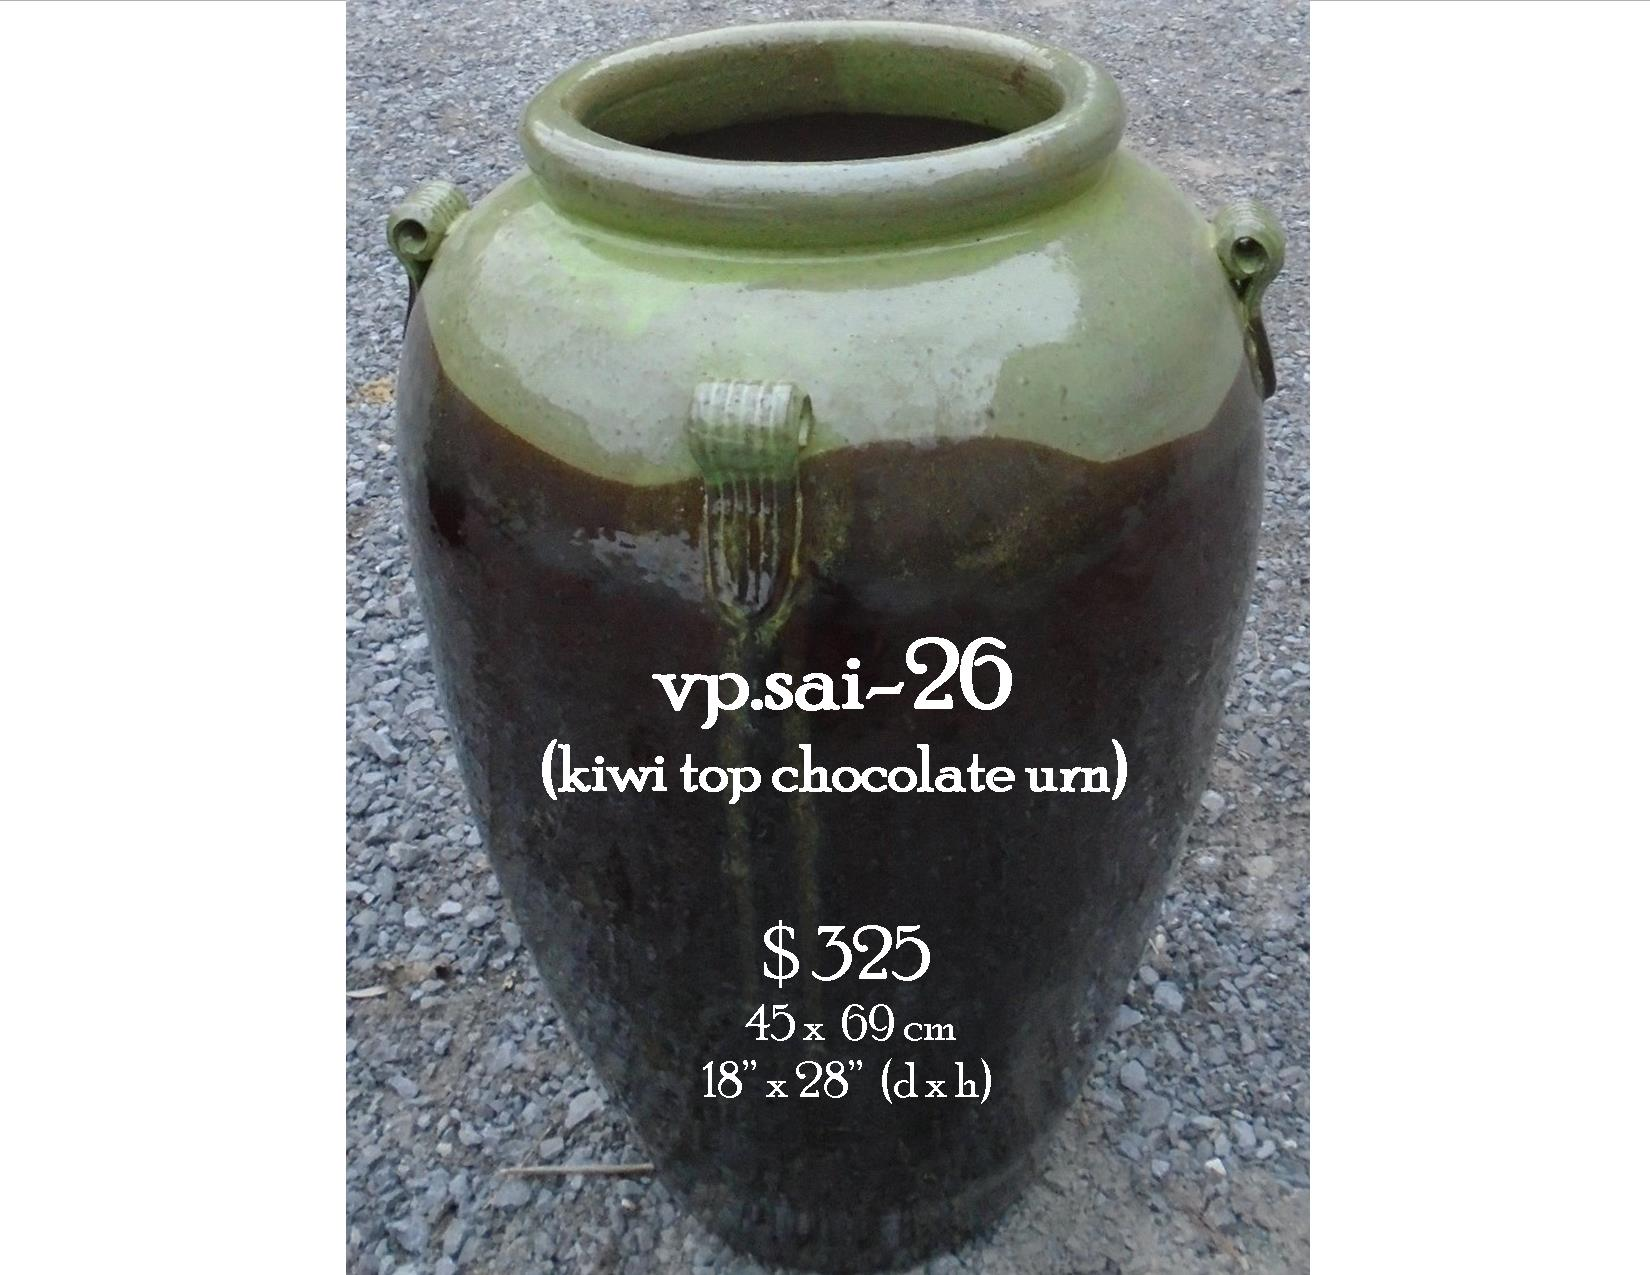 vp.sai-26  kiwi top chocolate urn